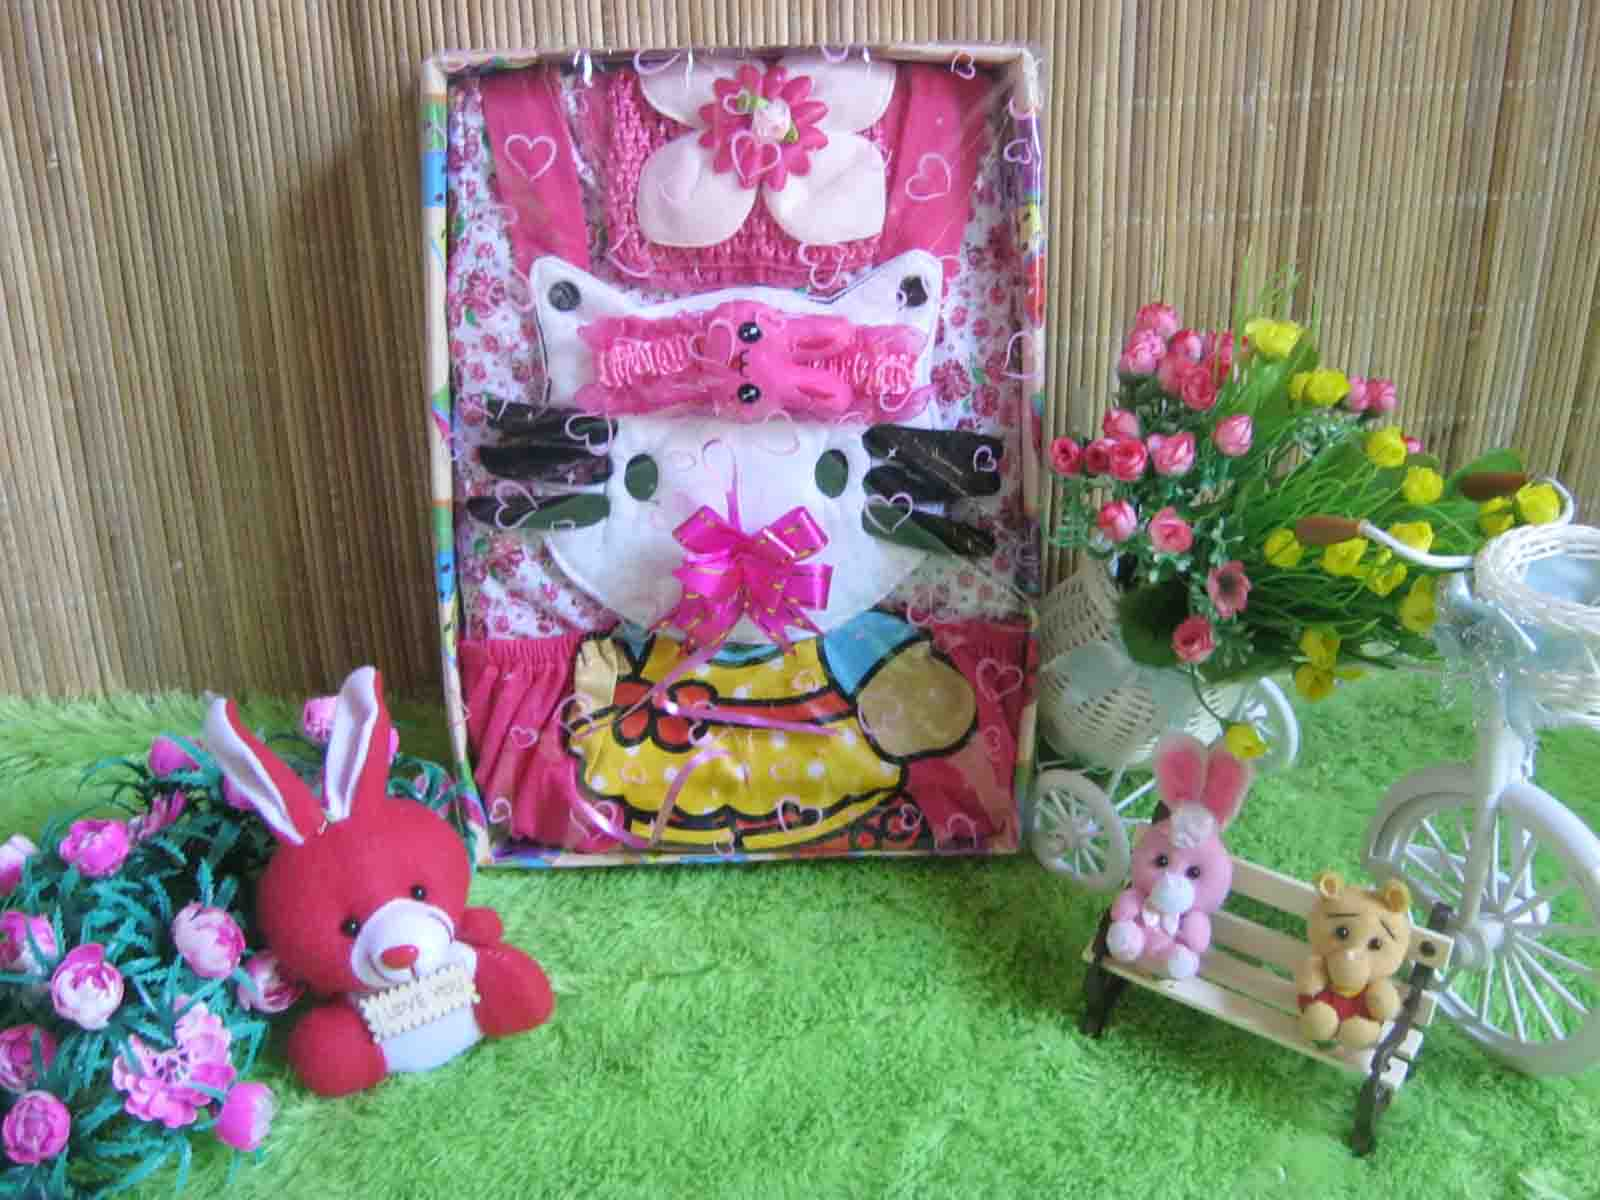 Serba Hello Kitty Paket Kado Bayi Dress Hello Kitty Pink Cantik Jual Kado Bayi